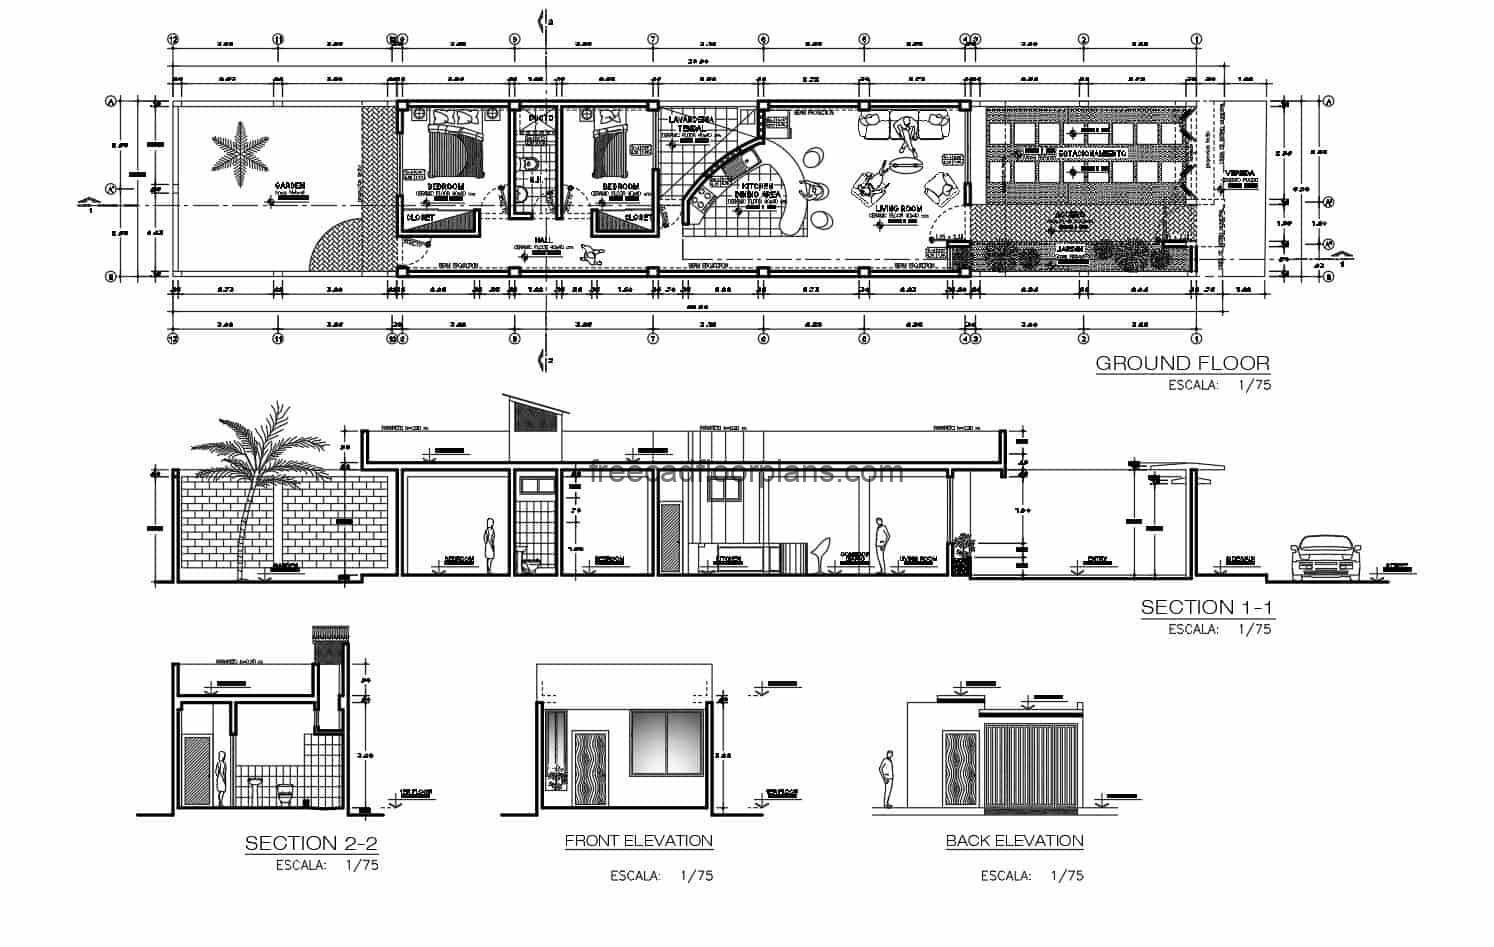 Architectural and dimensional plans, with facade elevations and single-level house cuts with two bedrooms, parking, garden, living room, kitchen and dining room, a shared bathroom and laundry area. Preliminary plans in DWG format from Autocad for free download.